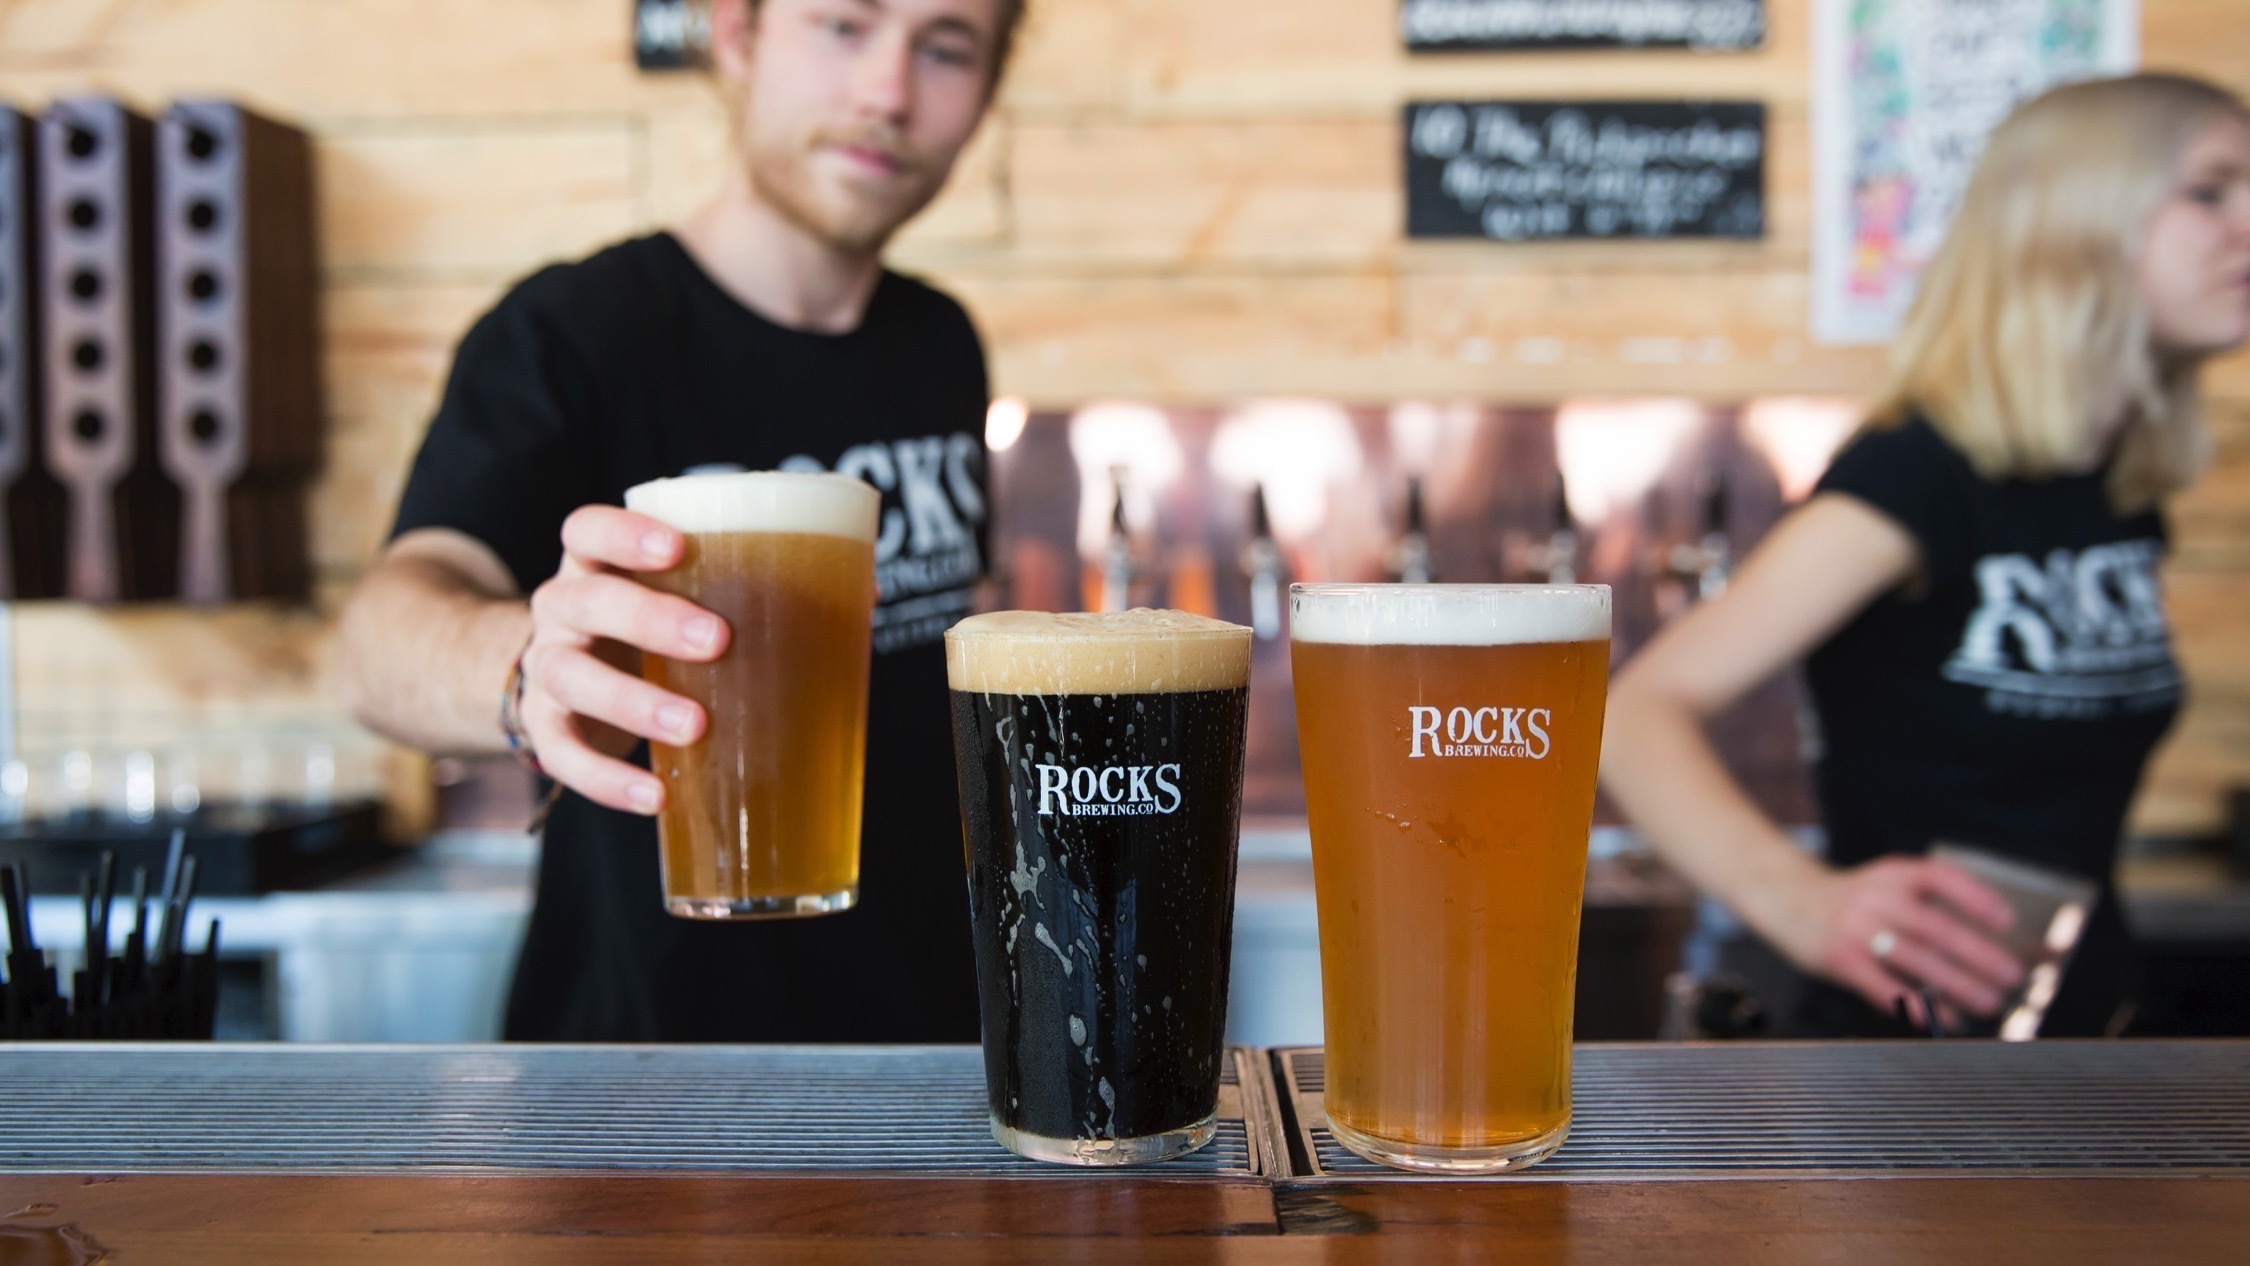 Rocks Brewing Co